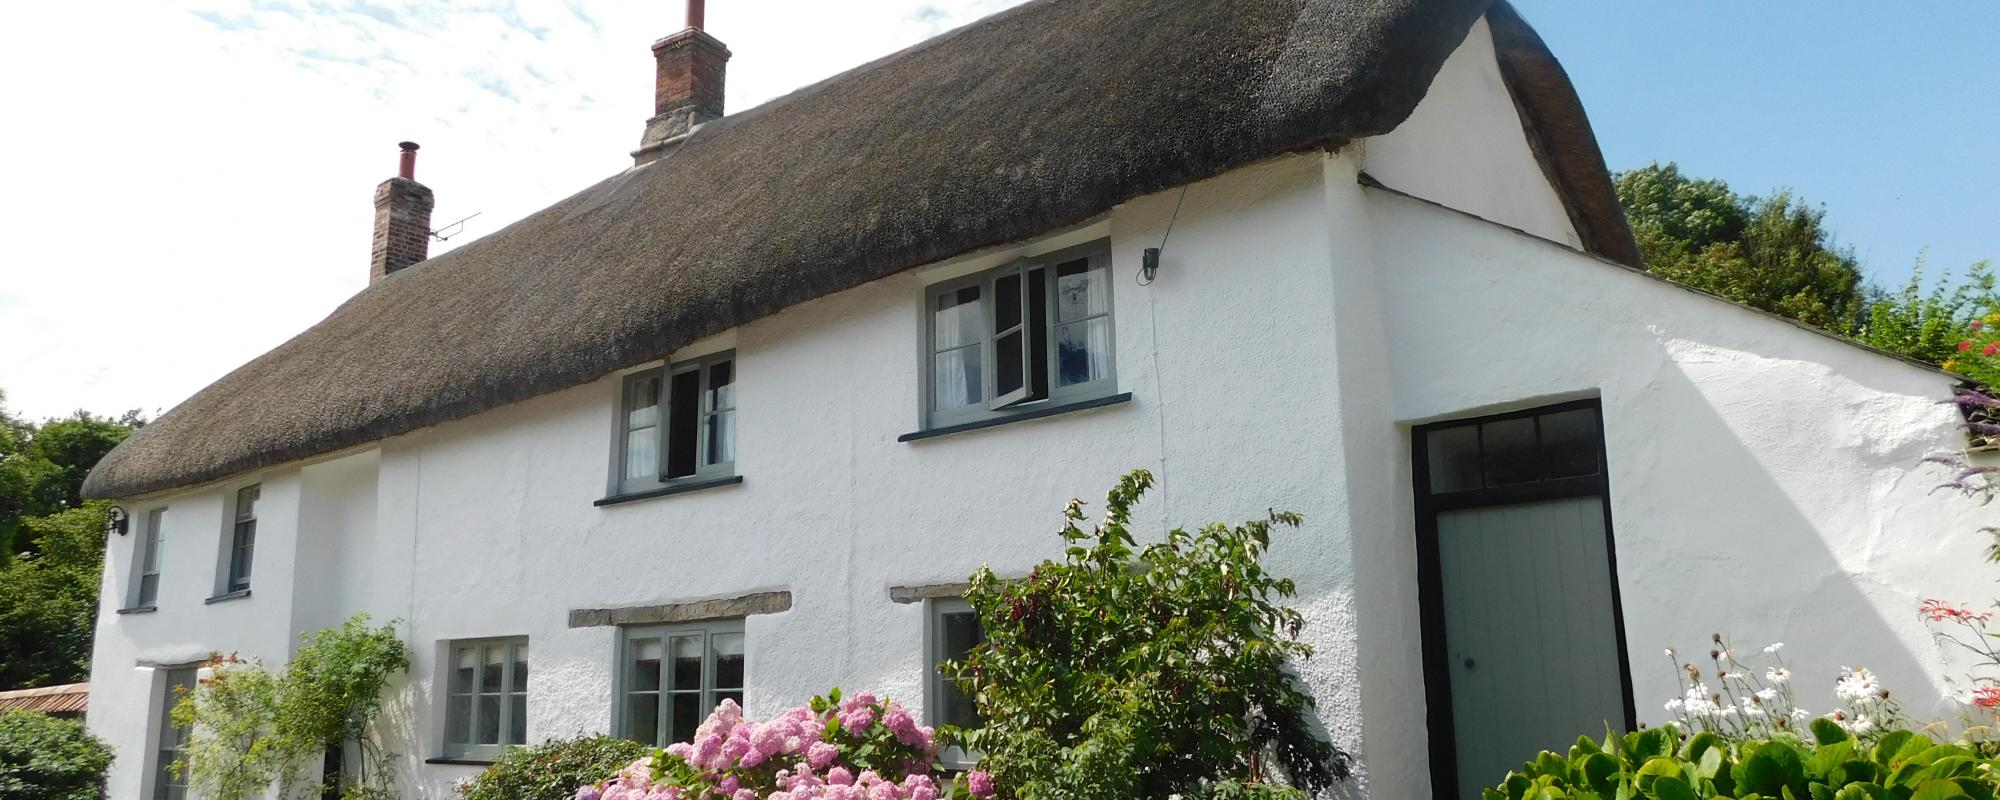 Middletown Farmhouse B&B, Sampford Courtenay, Okehampton, Devon